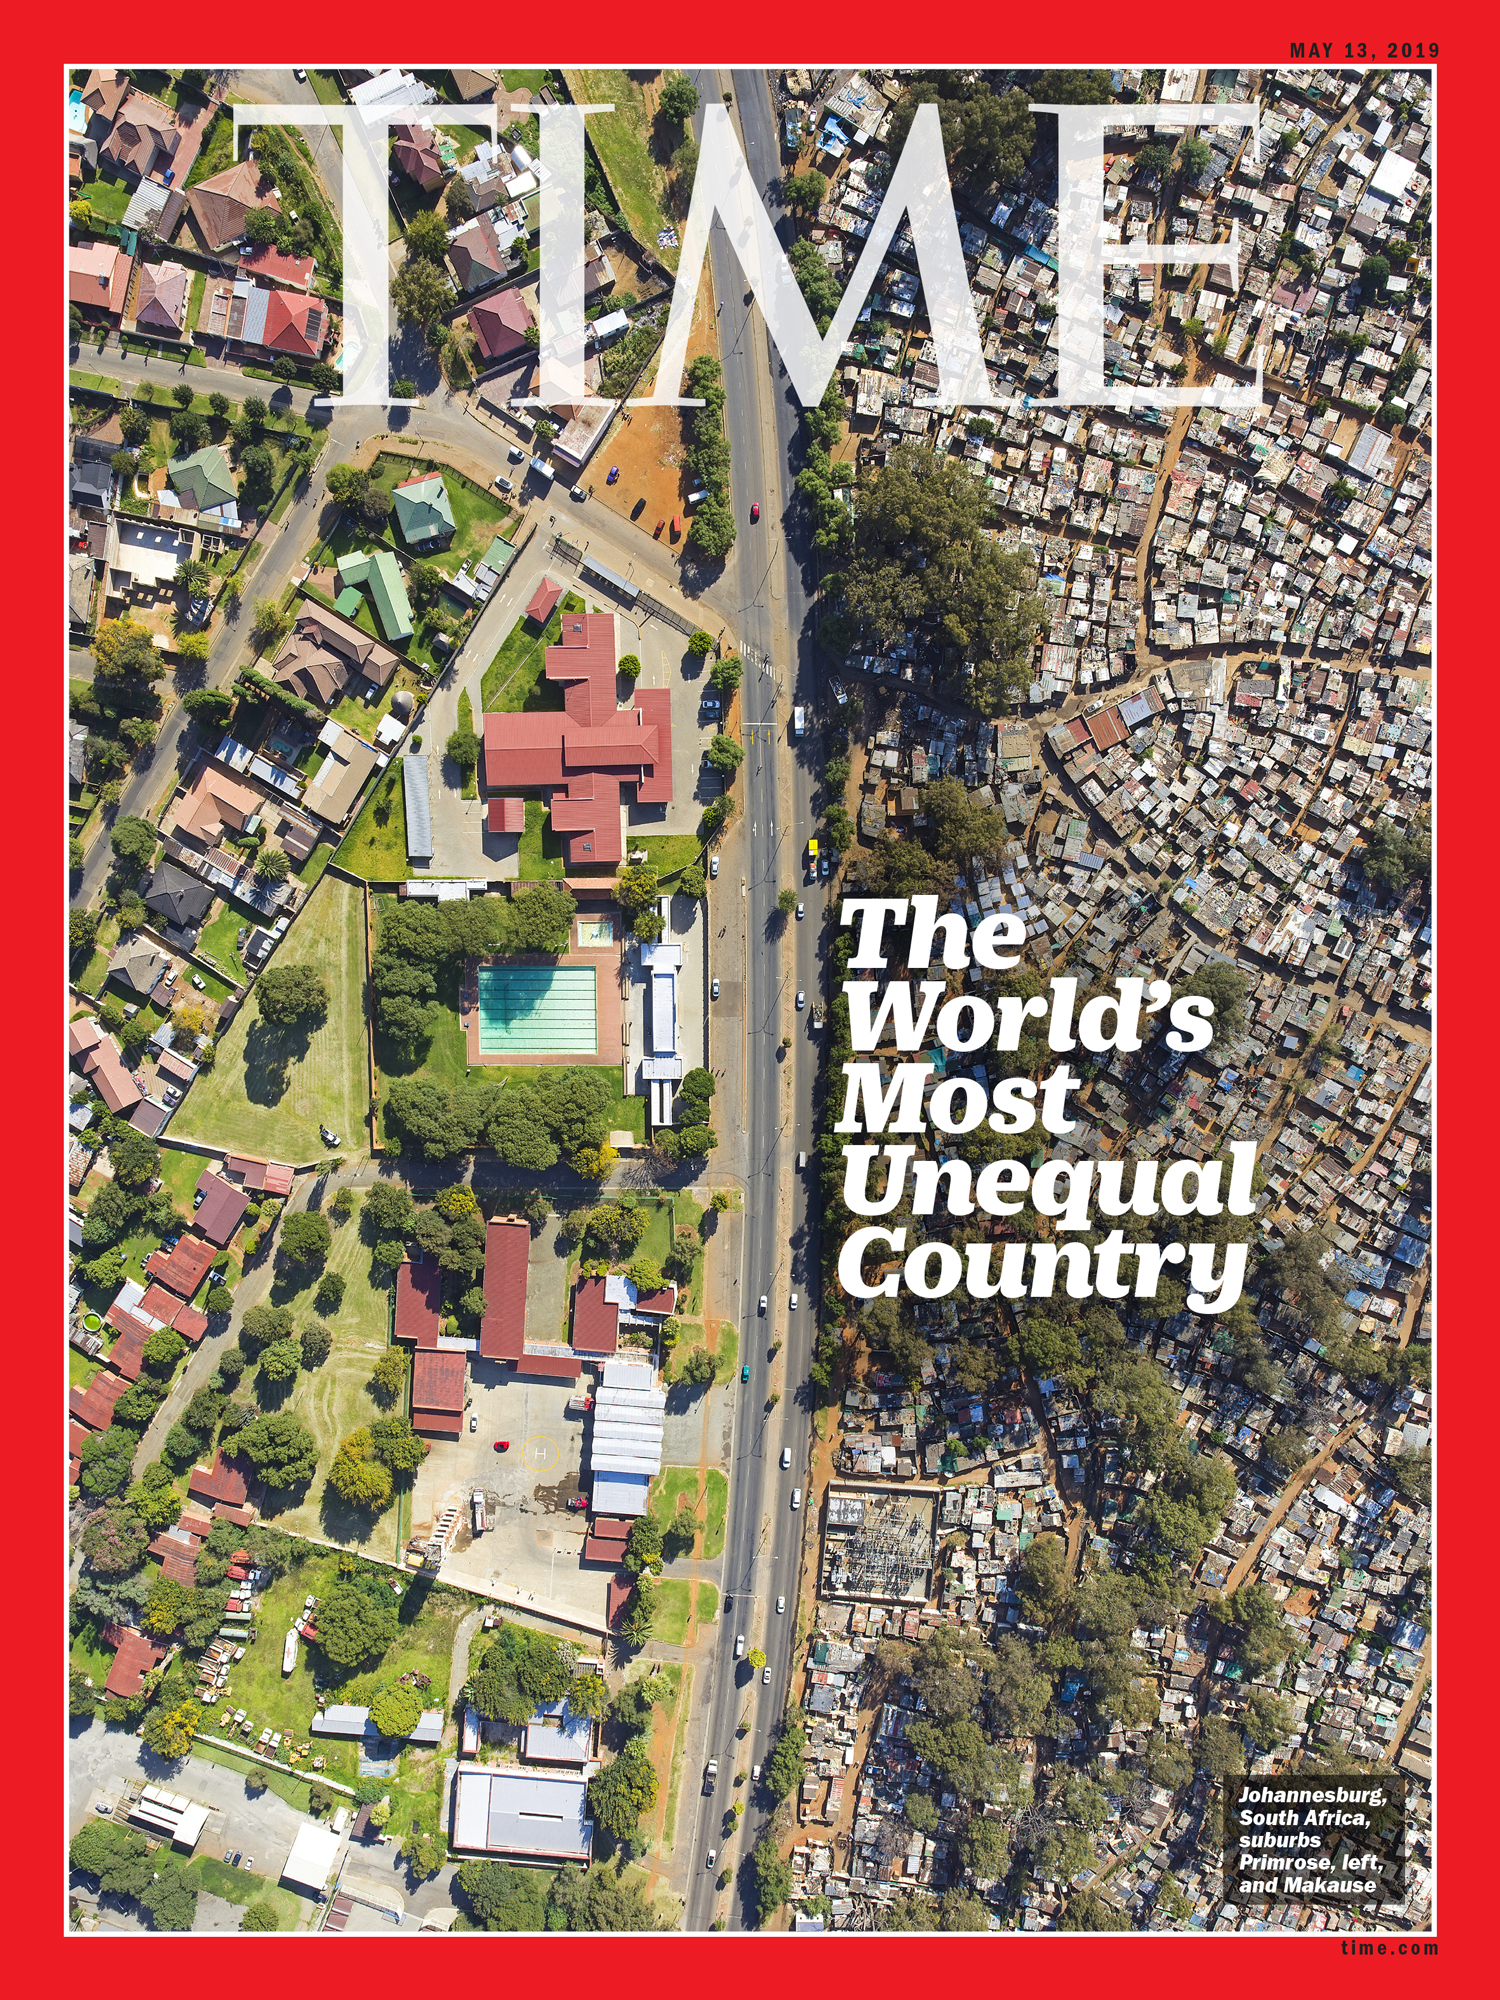 The Story Behind TIME's Cover on Inequality in South Africa | Time